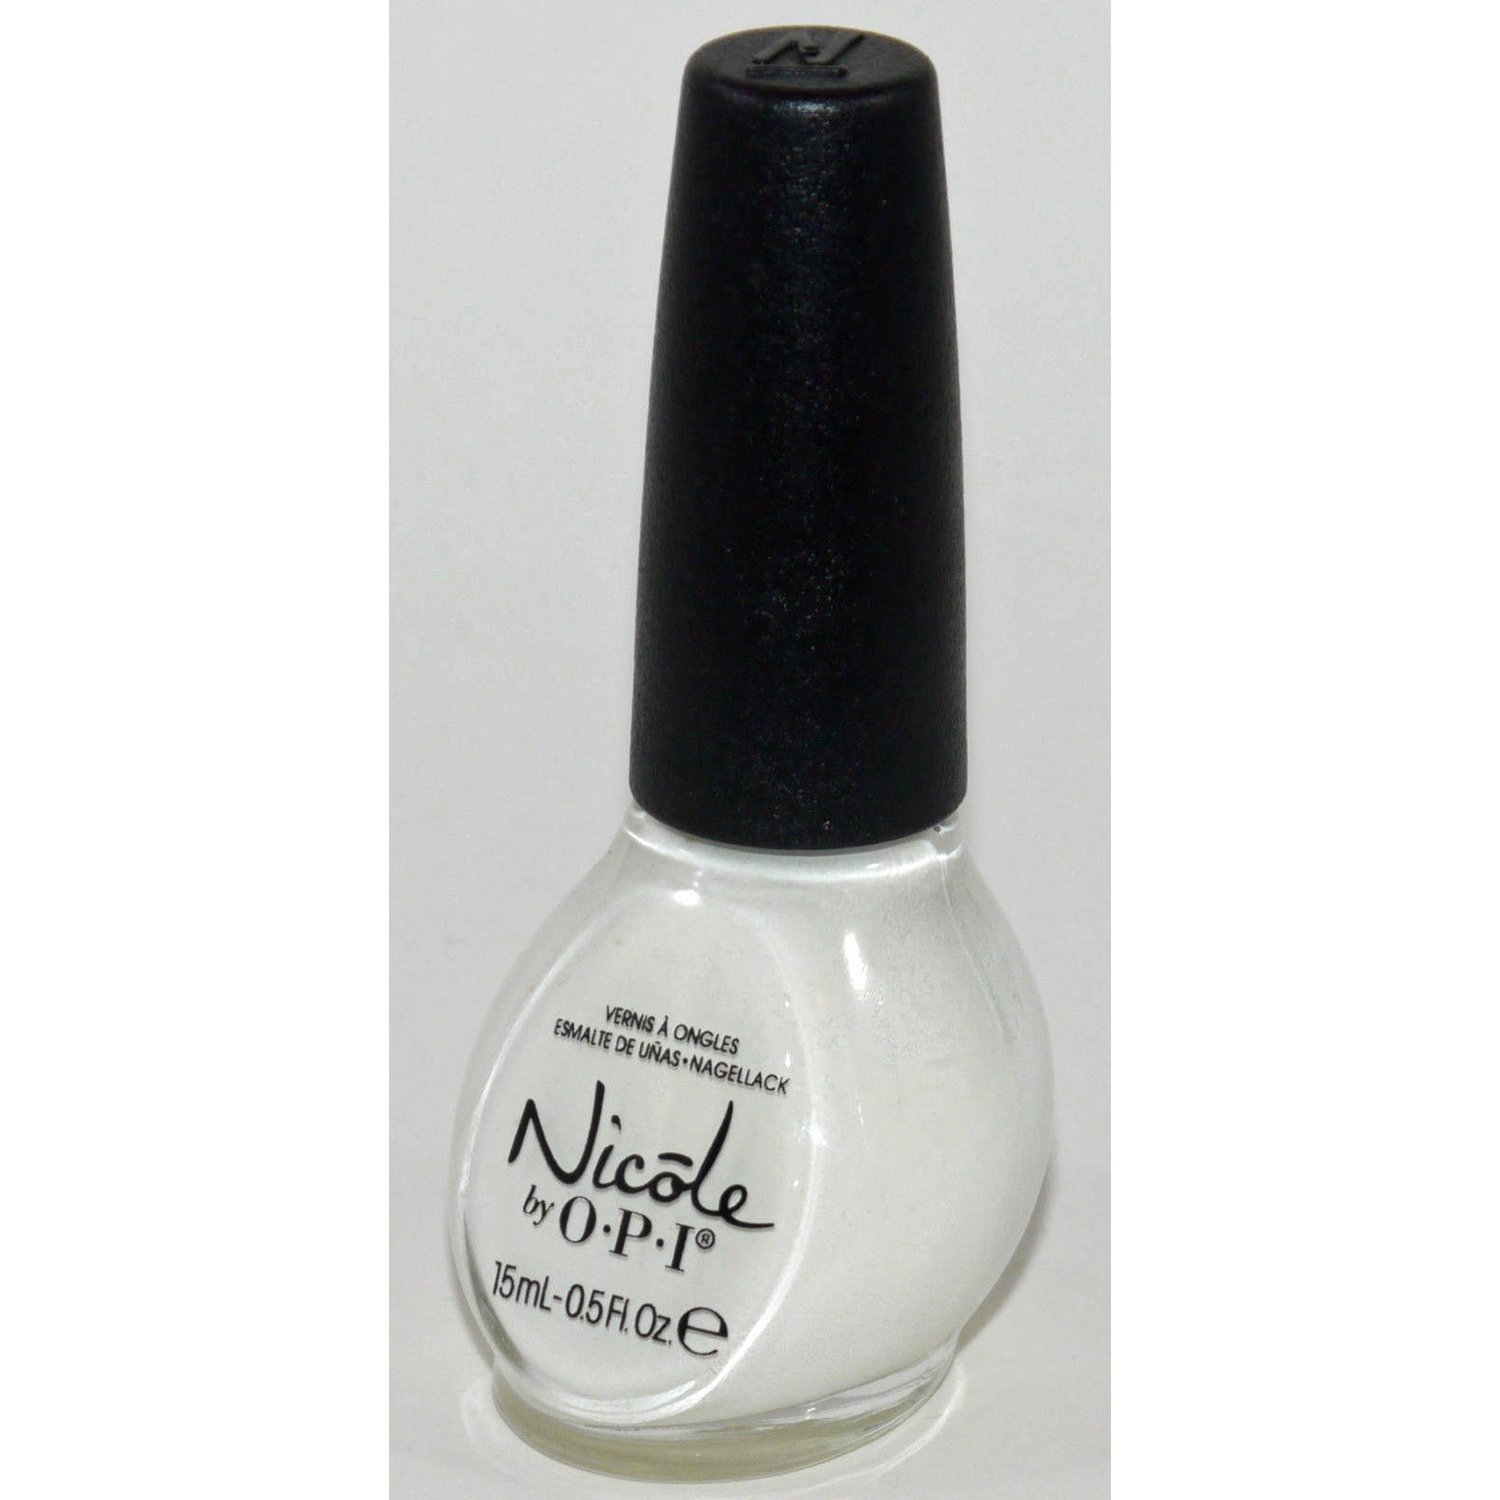 Yoga-then-Yogurt -Nicole By OPI Nail Polish Lacquer .5 oz